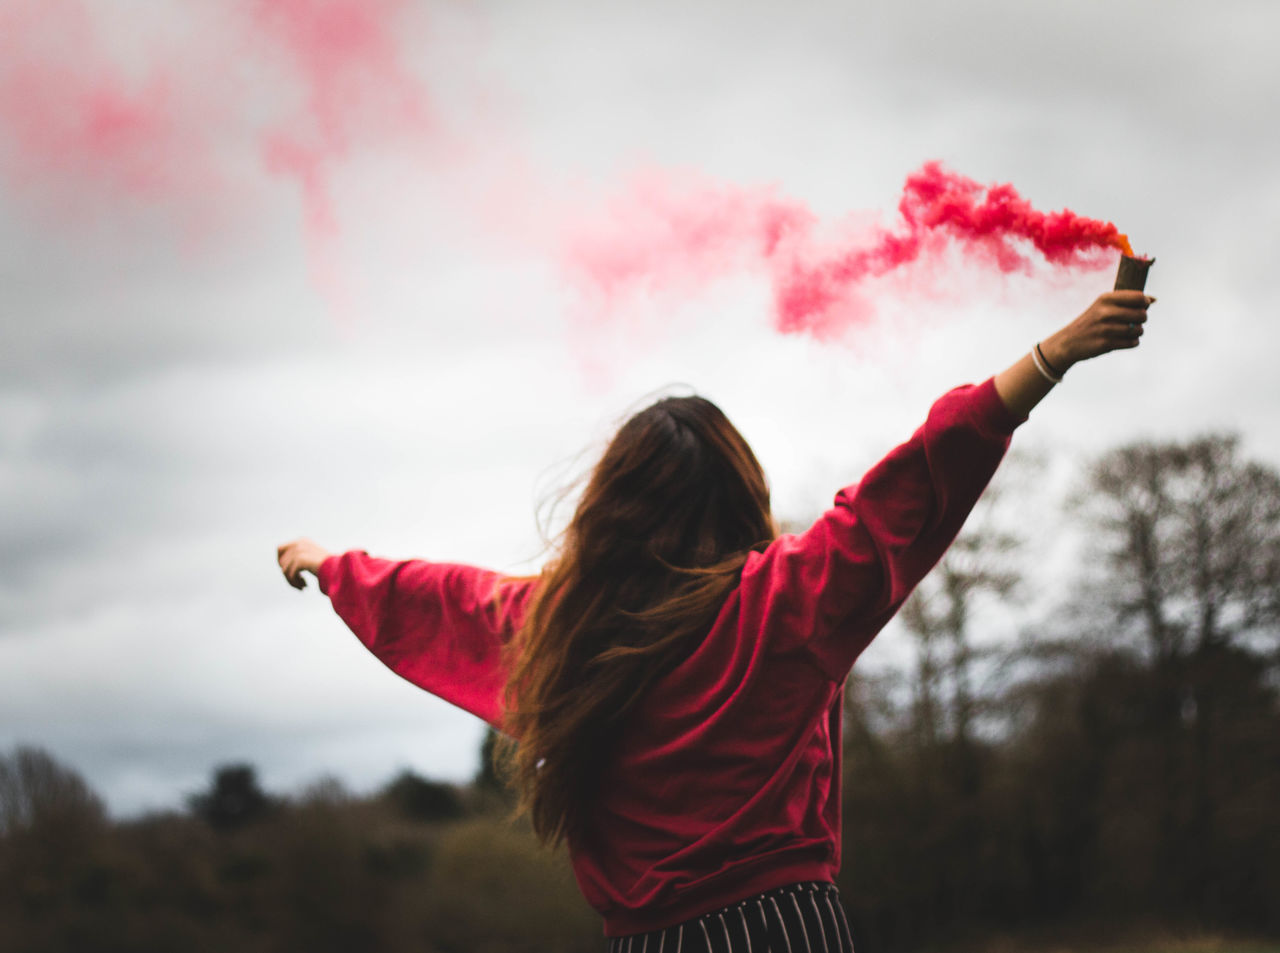 Rear View Of Happy Young Woman Holding Distress Flare While Standing On Field Against Sky